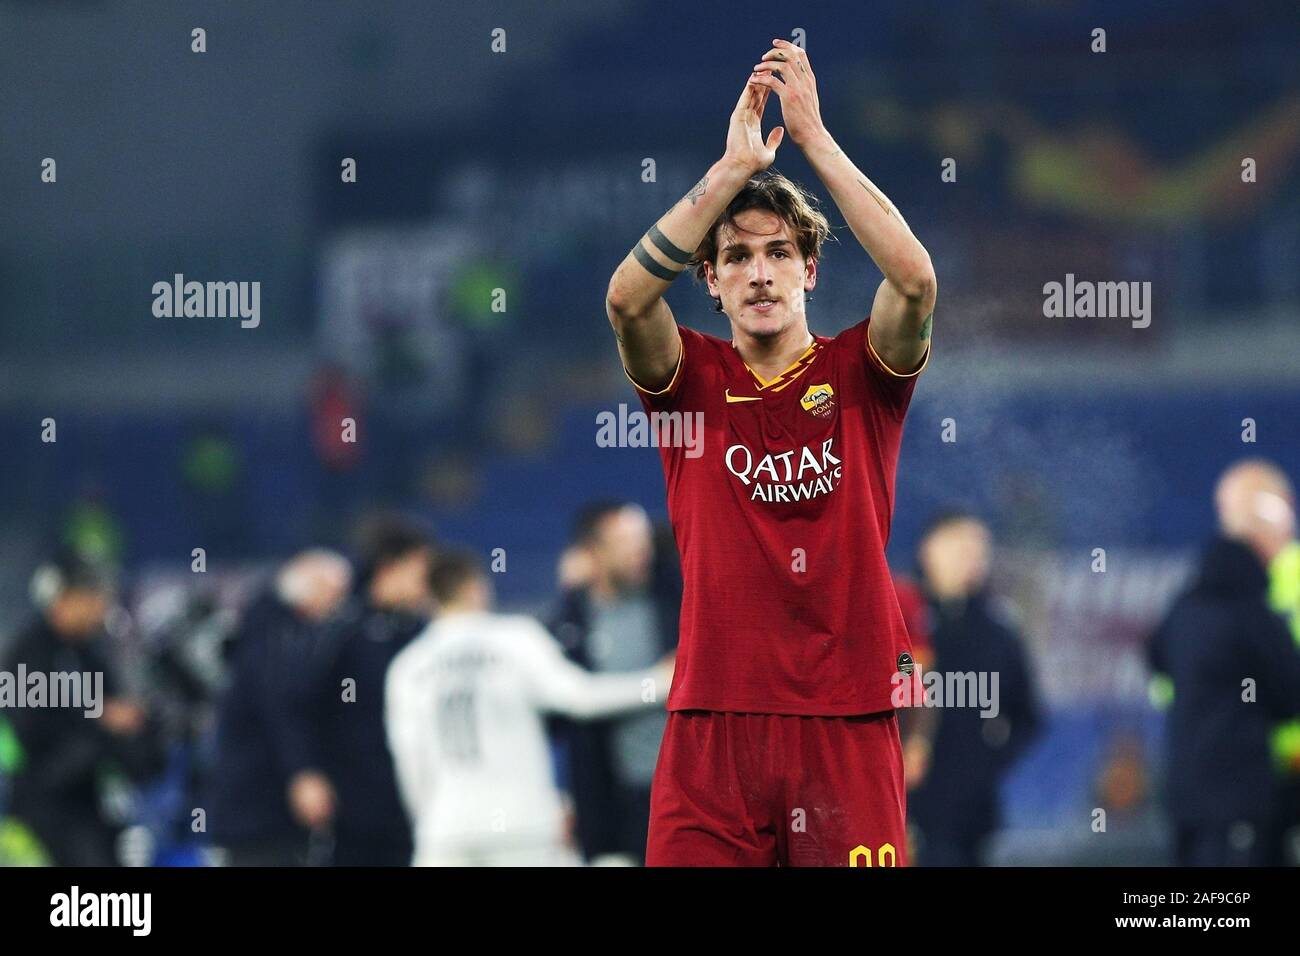 Nicolo' Zaniolo of Roma greets his supporters at the end of the UEFA Europa League, Group J football match between AS Roma and Wolfsberg AC on December 12, 2019 at Stadio Olimpico in Rome, Italy - Photo Federico Proietti/ESPA-Images Stock Photo